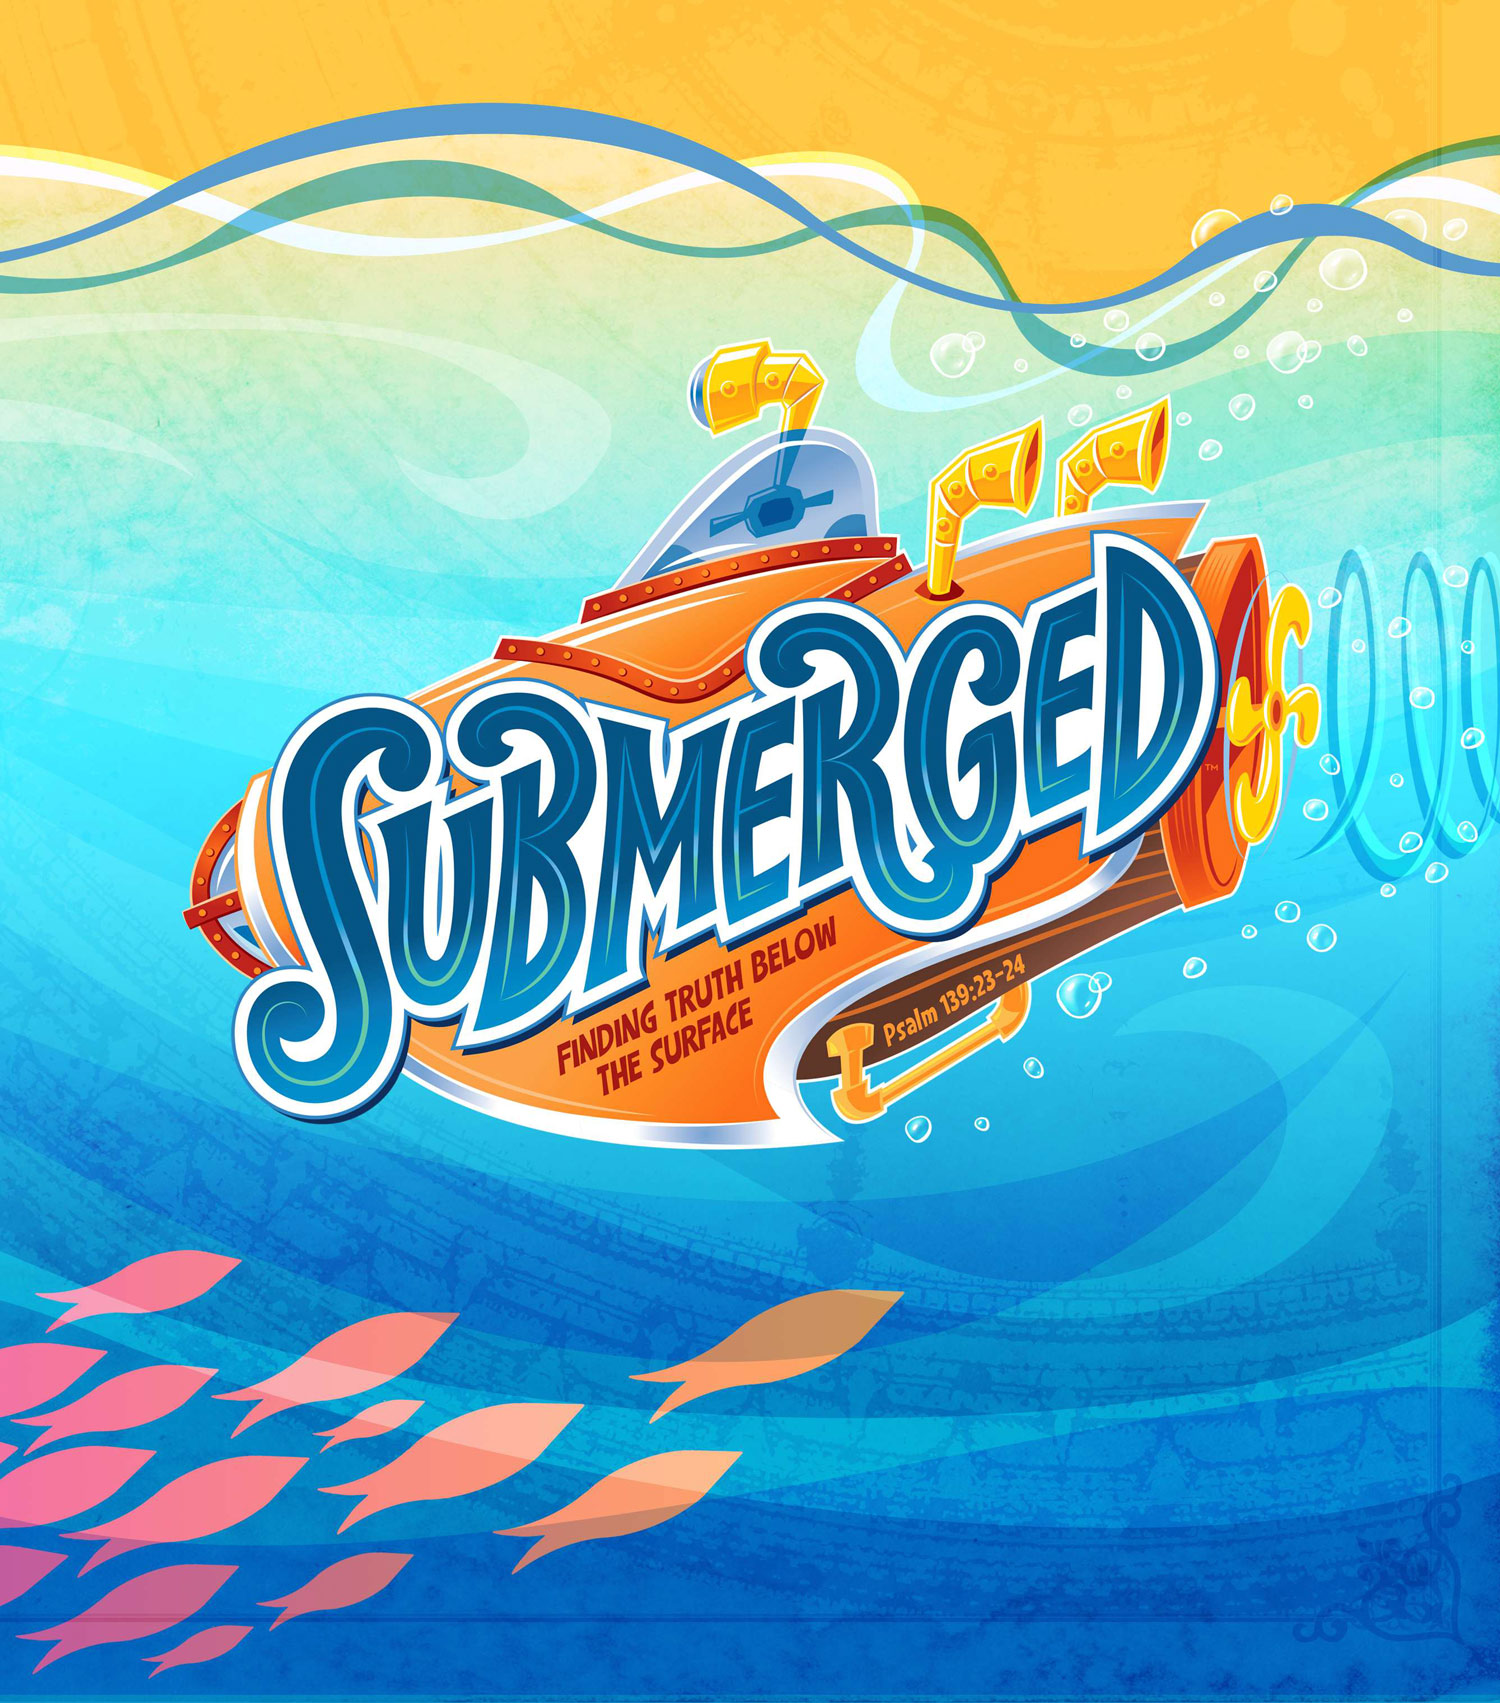 Submerged-highres